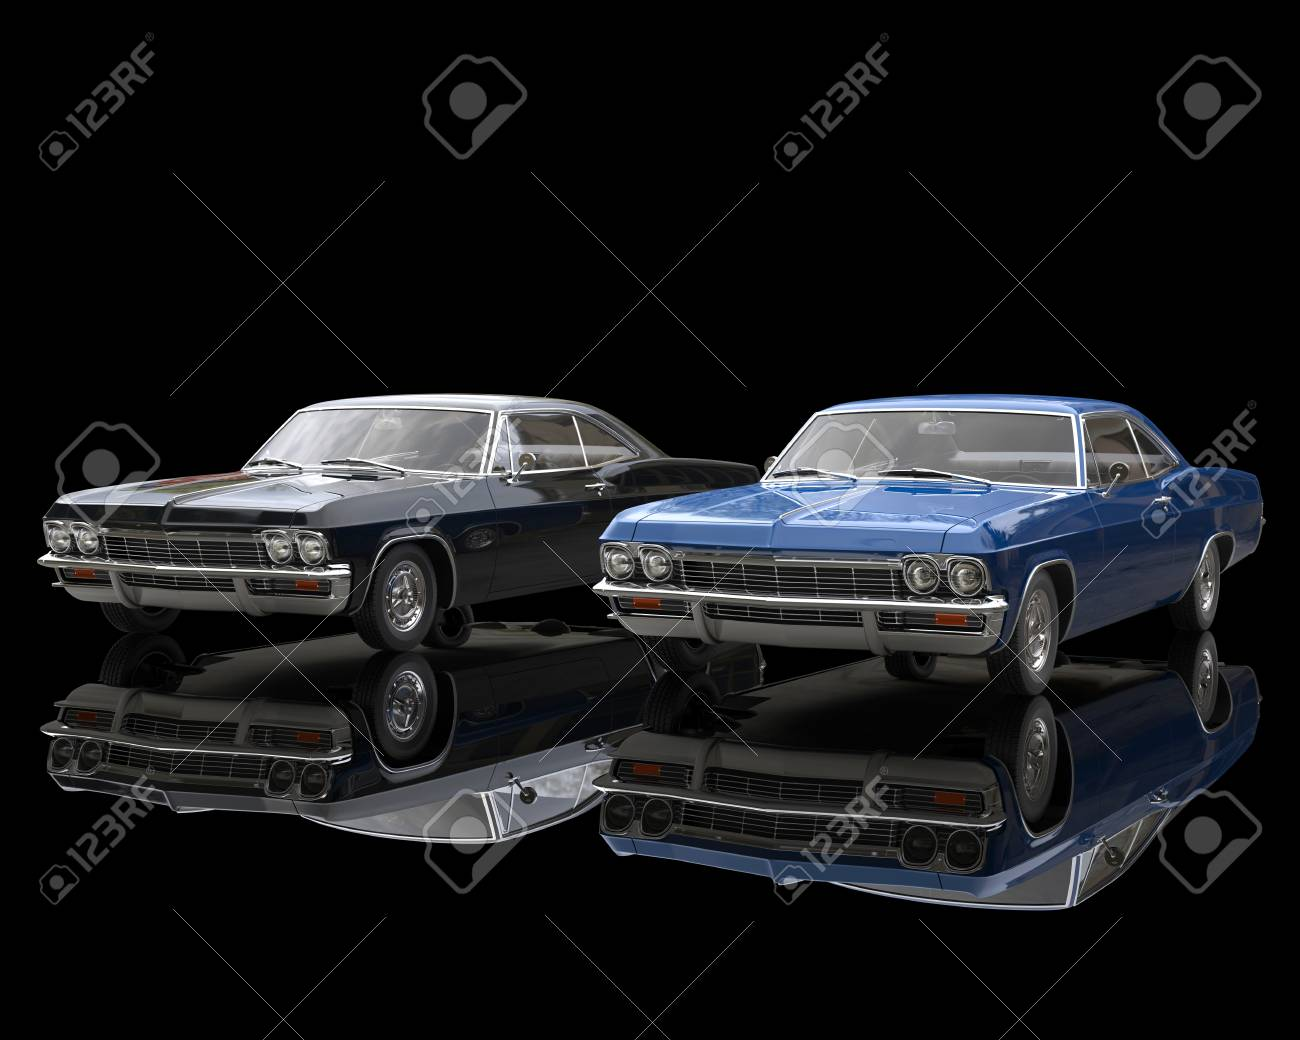 Black And Blue Classic Muscle Cars On Reflective Black Background ...